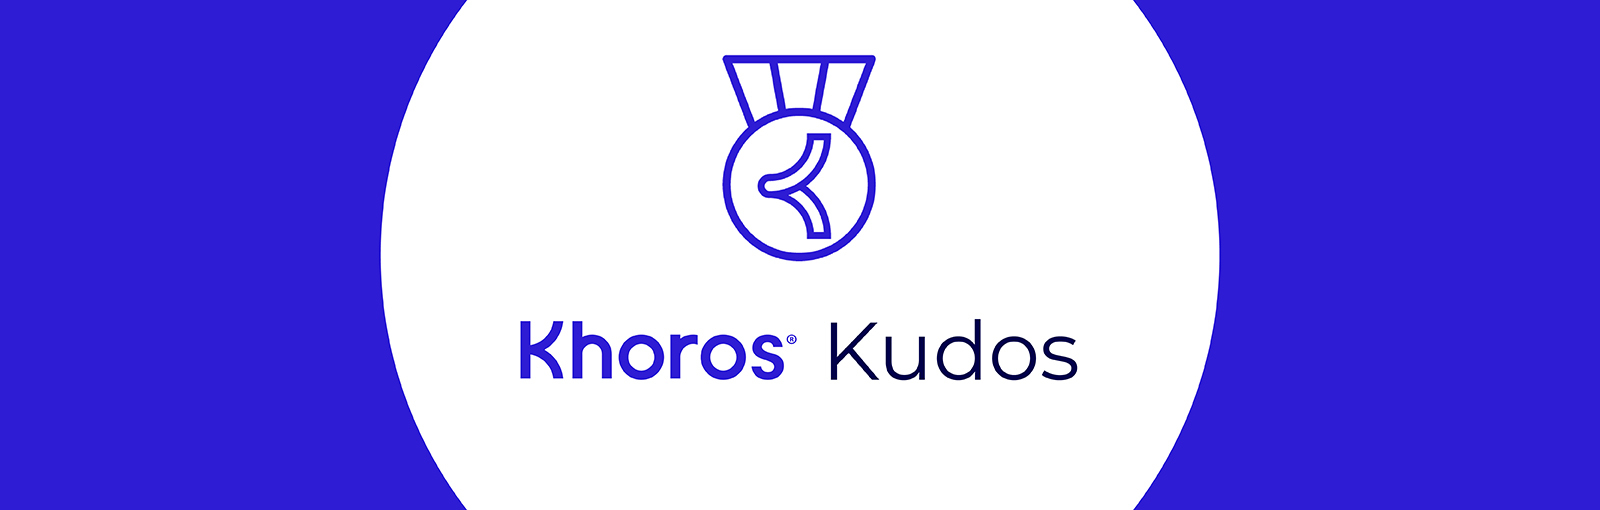 11 outstanding brands in 2020: This year's Khoros Kudos winners